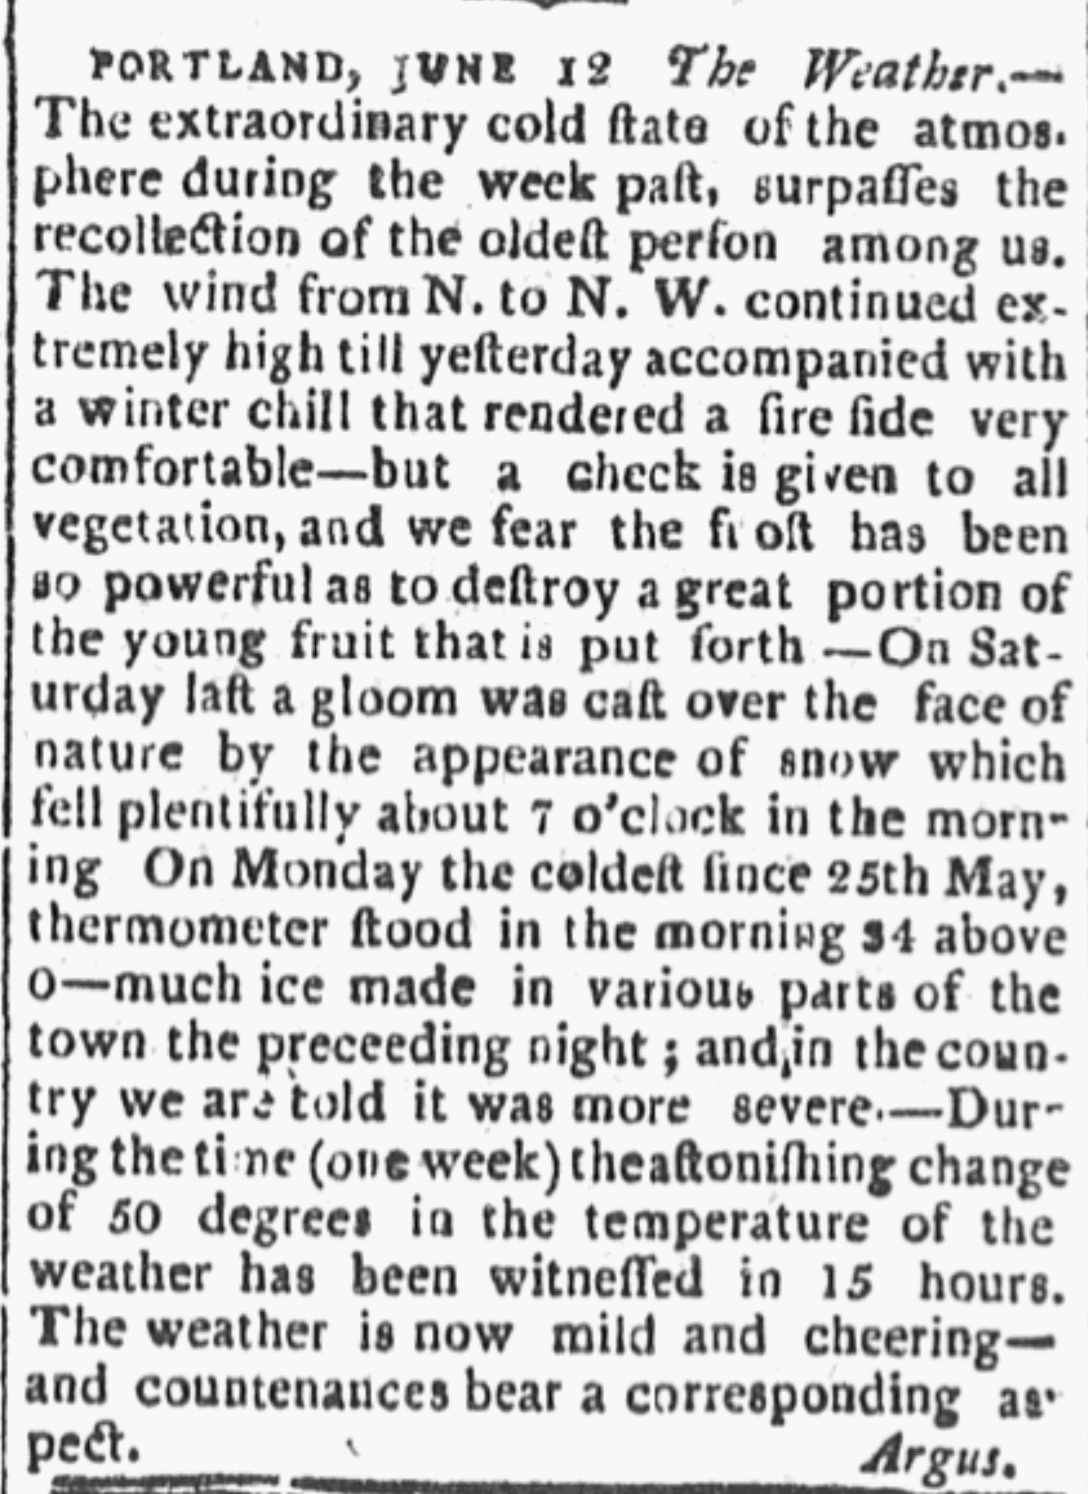 From the Boston Daily Advertiser, June 14, 1816